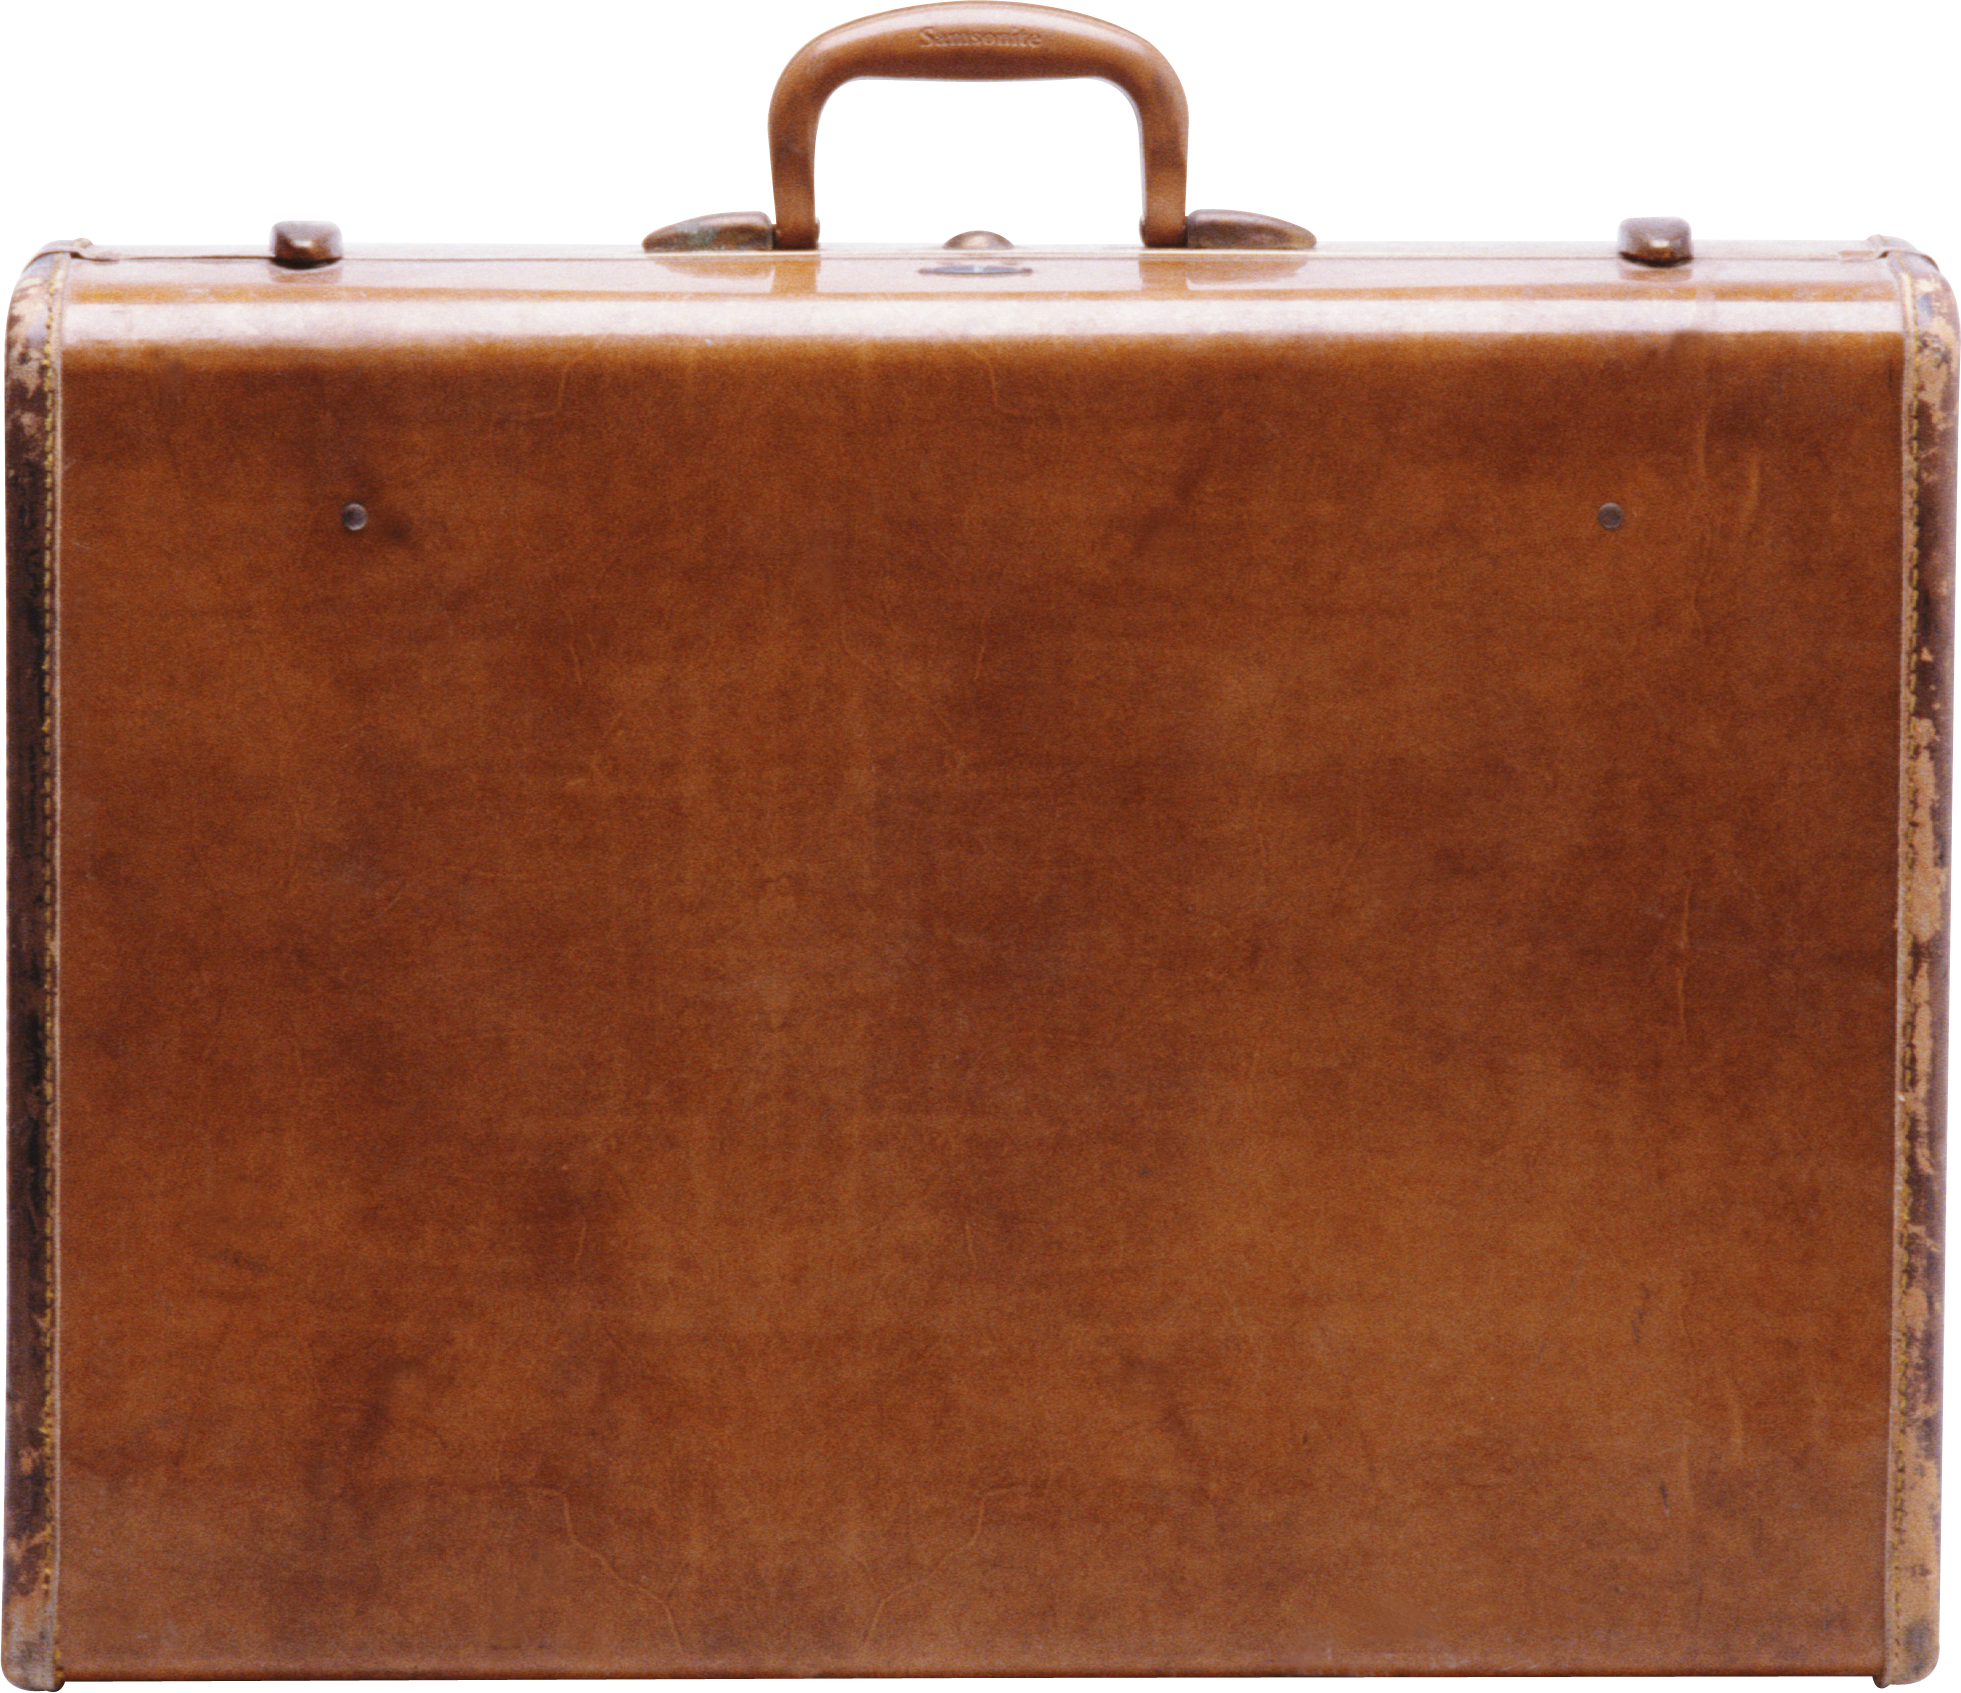 Suitcase Brown PNG Image